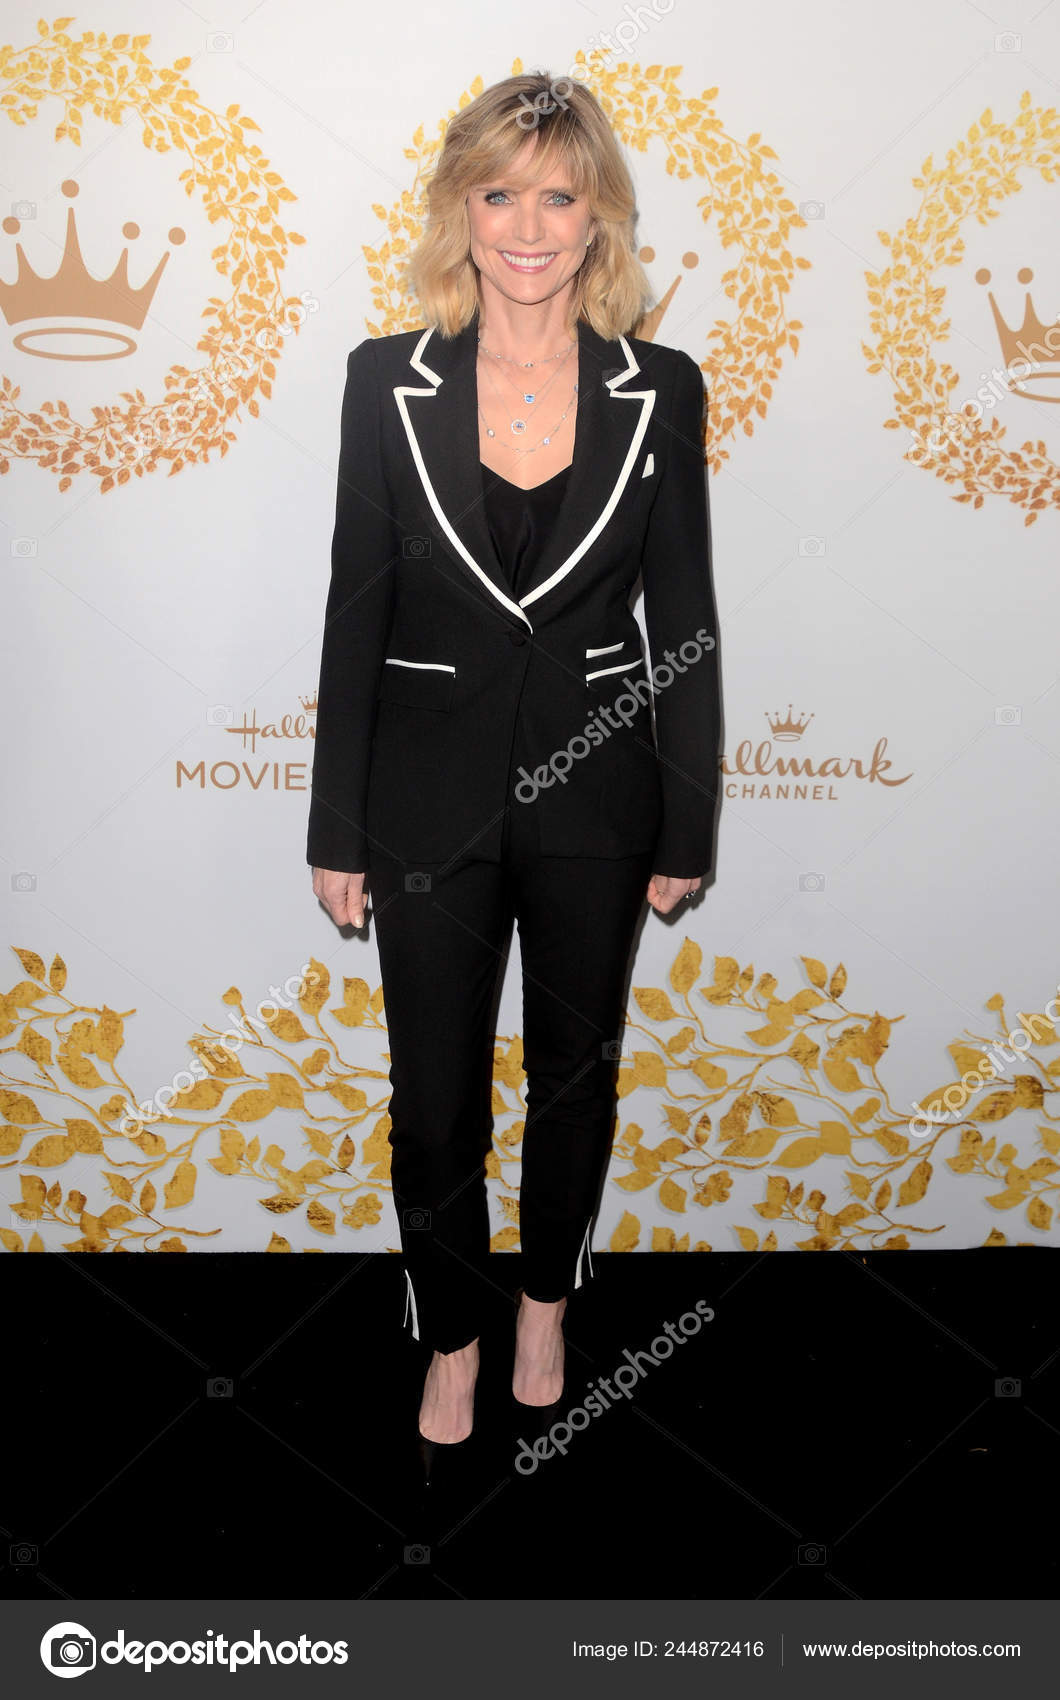 Julia Ormond Immagini immagini: courtney thorne-smith 2019. los angeles feb